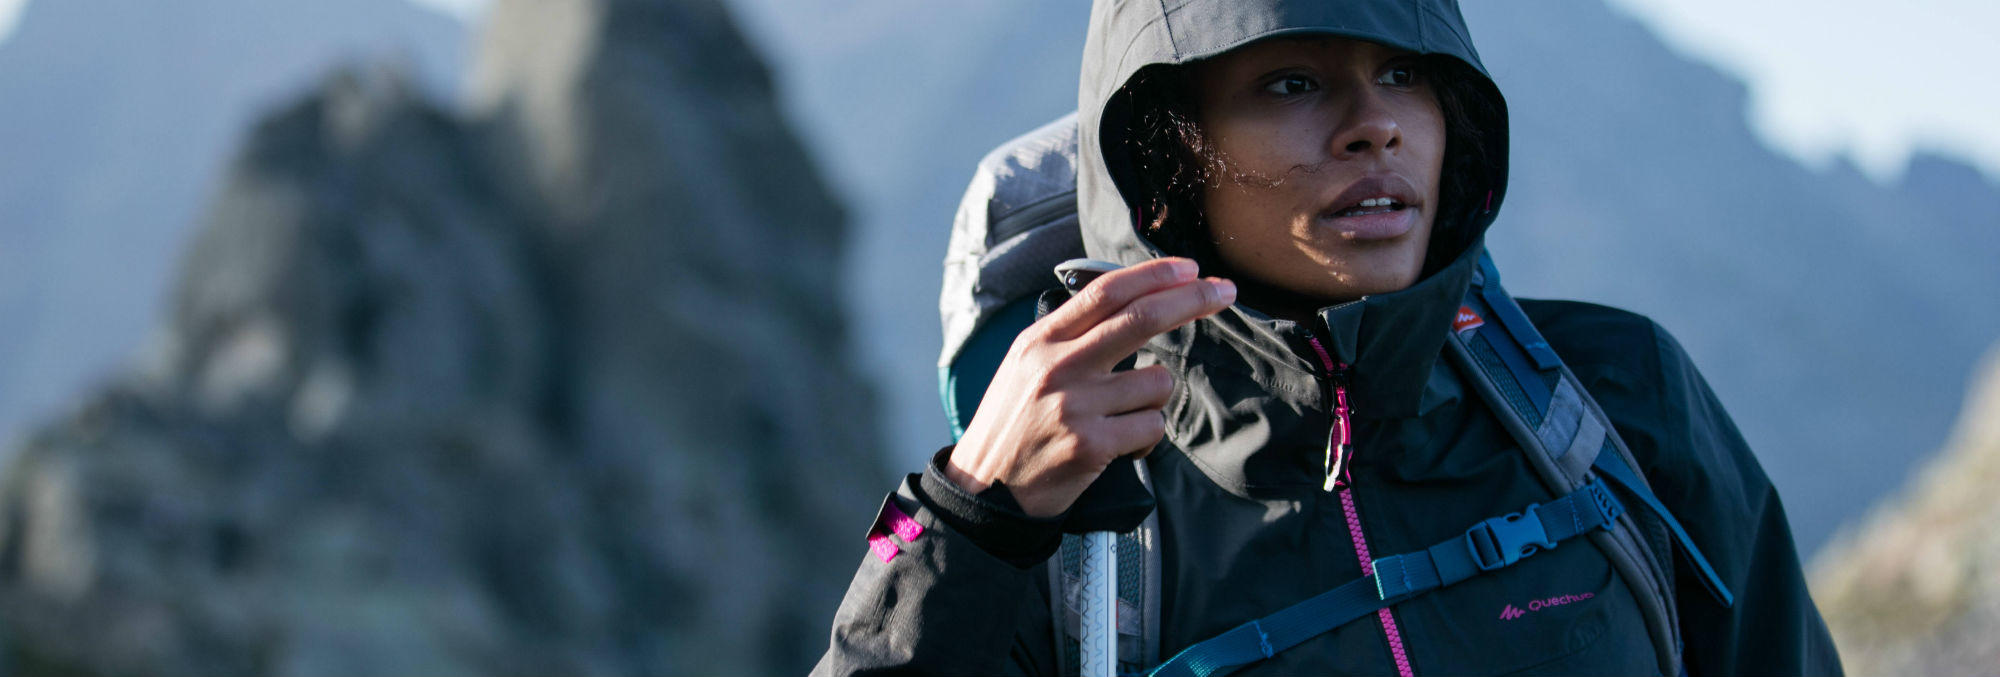 How To Choose The Right Waterproof Jacket For Hiking (Buyer's Guide)